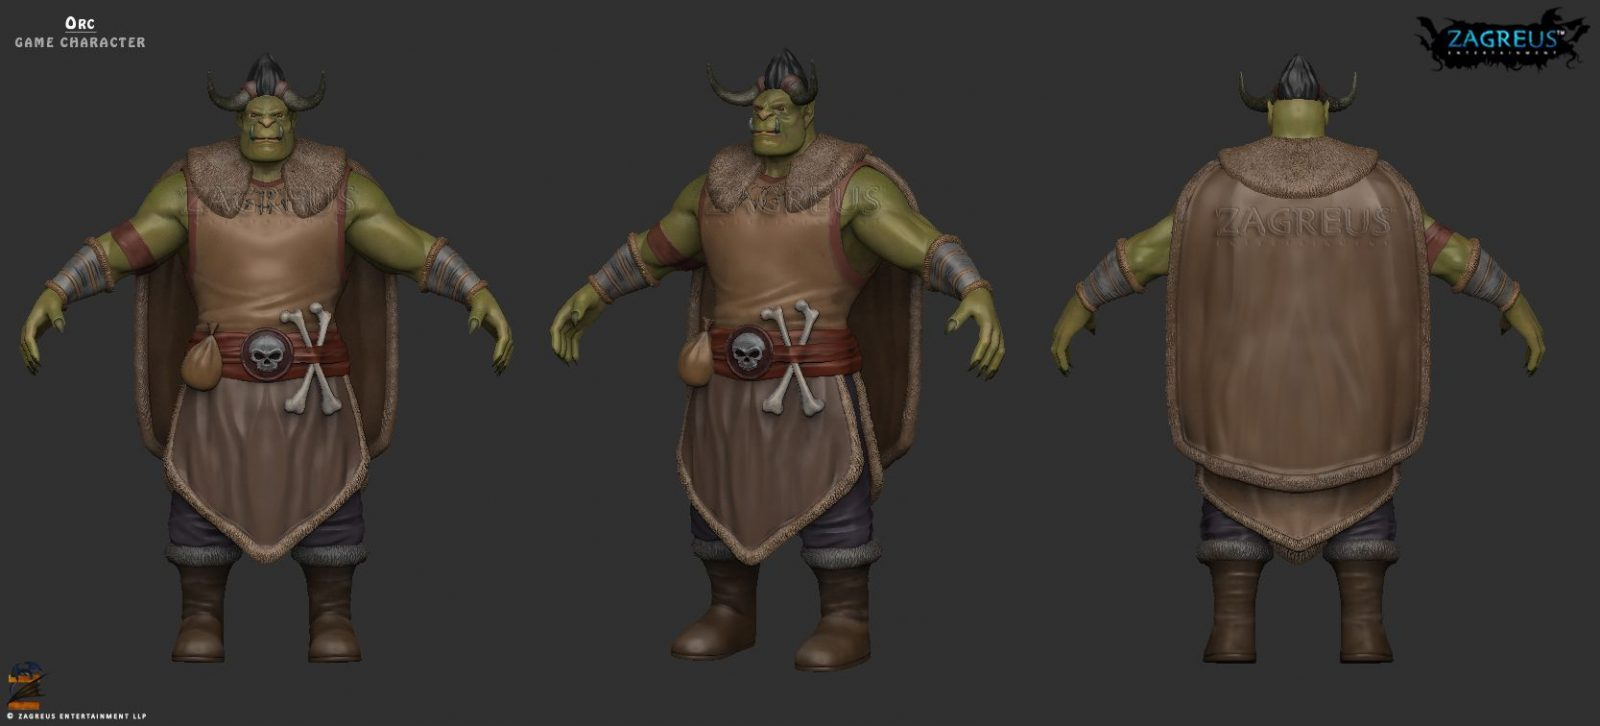 [Image: orc_character_02_ze.jpg]